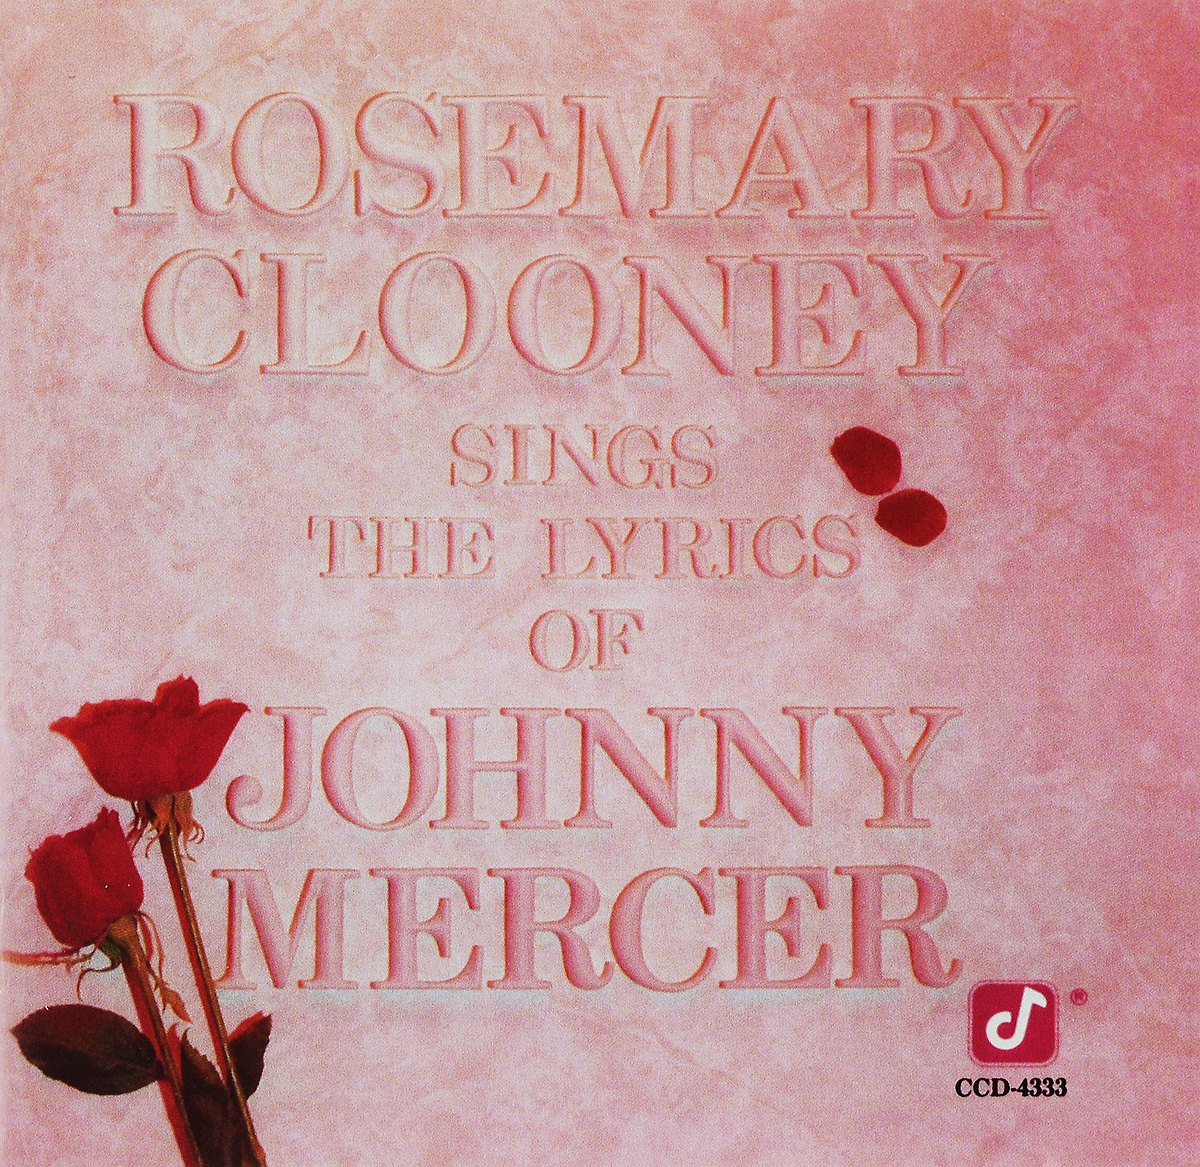 Джонни Мерсер Johnny Mercer. Rosemary Clooney.Sings The Lyrics Of Johnny Mercer mercer culinary mercer rules culinary mini